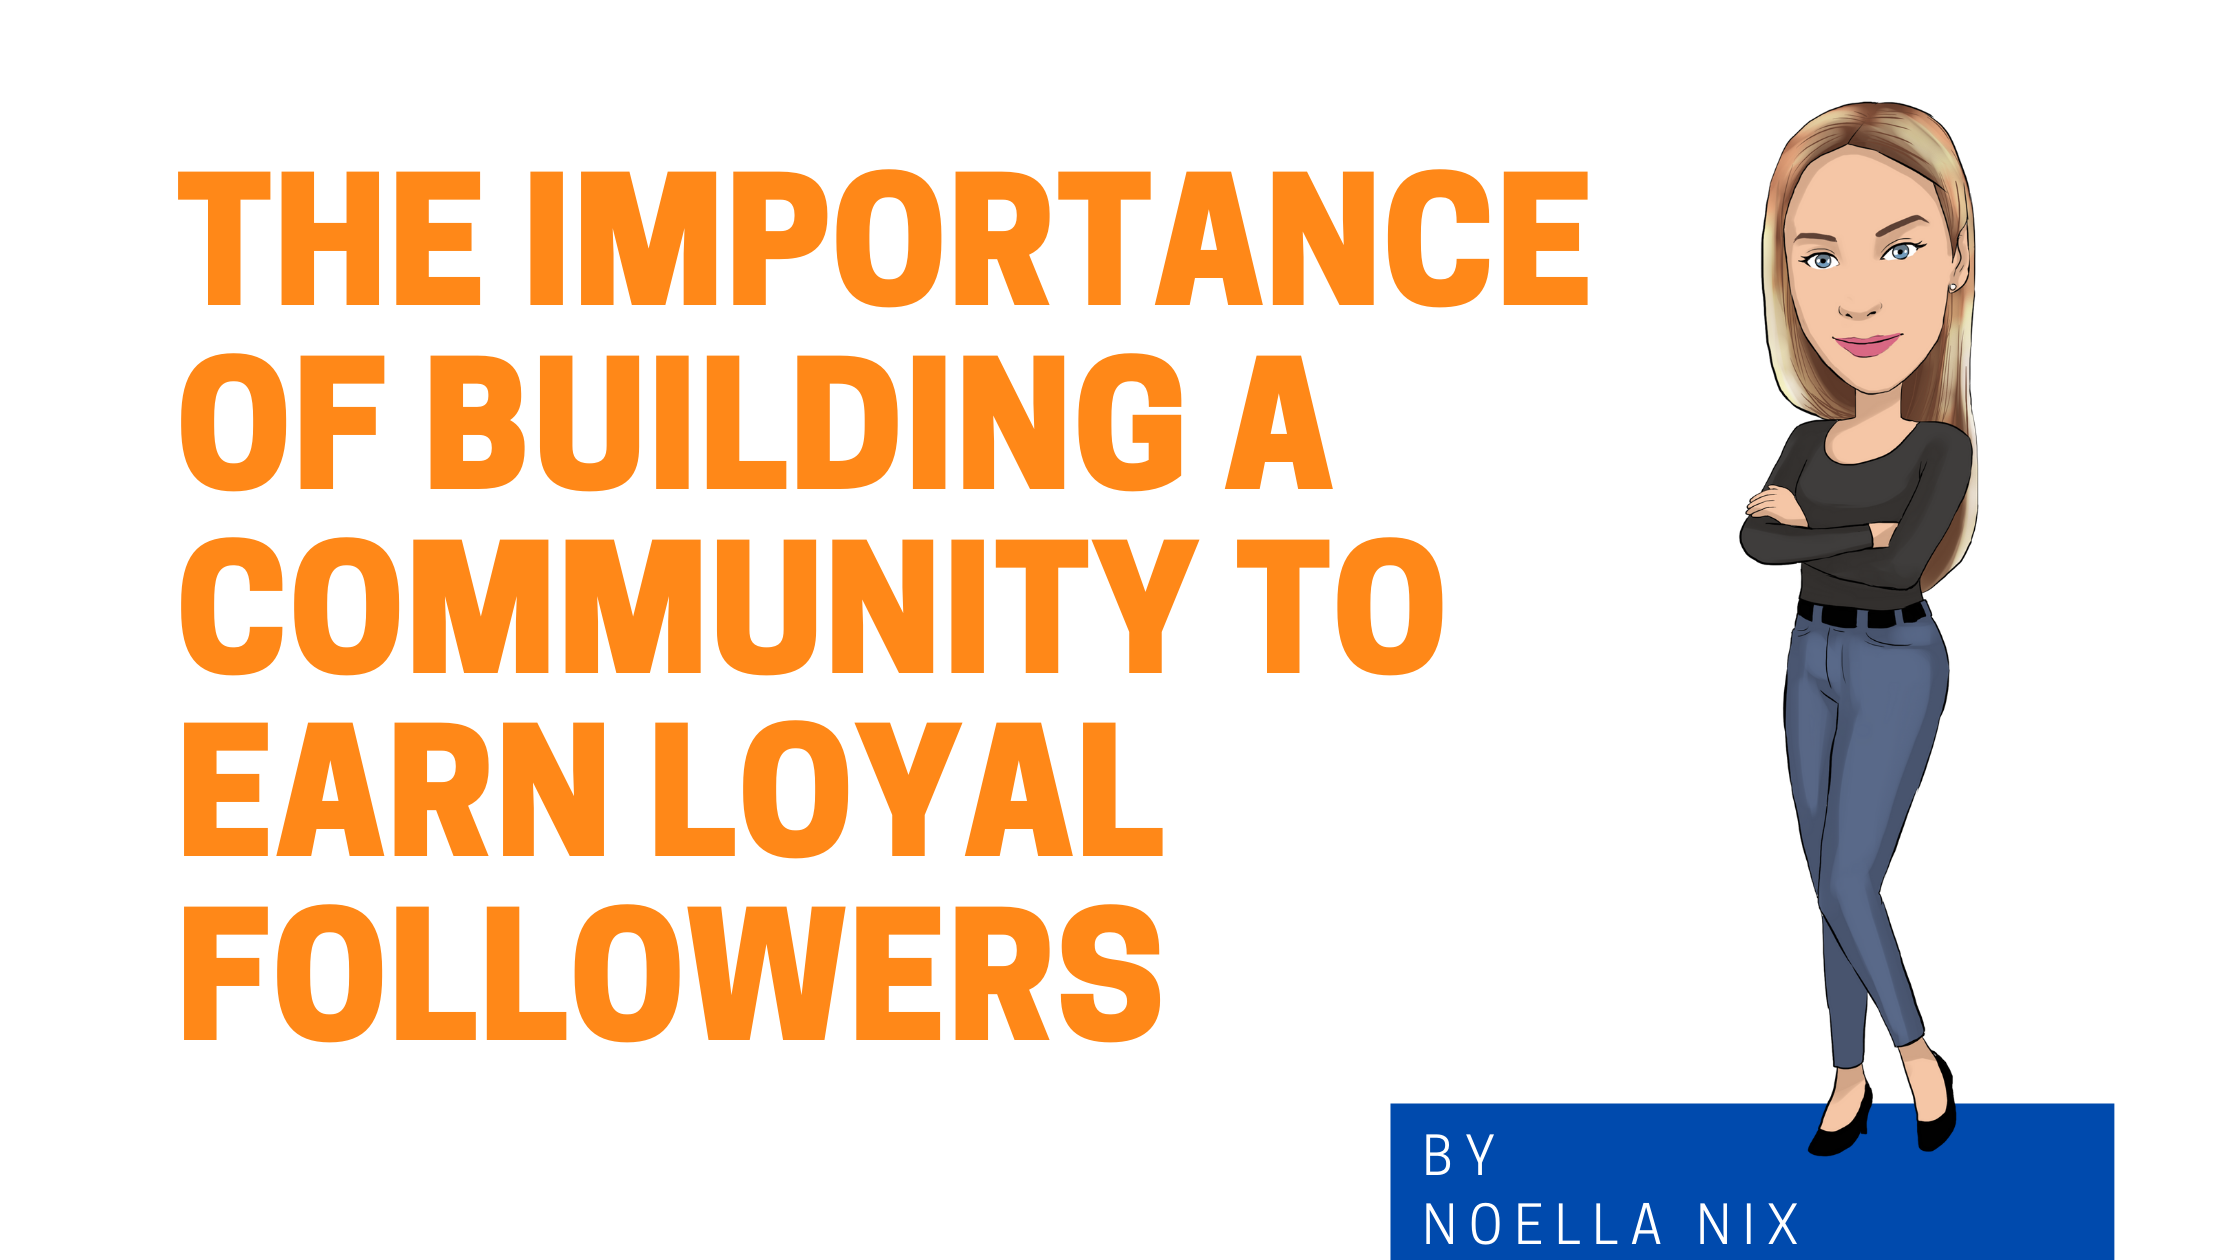 The Importance of Building a Community to Earn Loyal Followers Image graphic